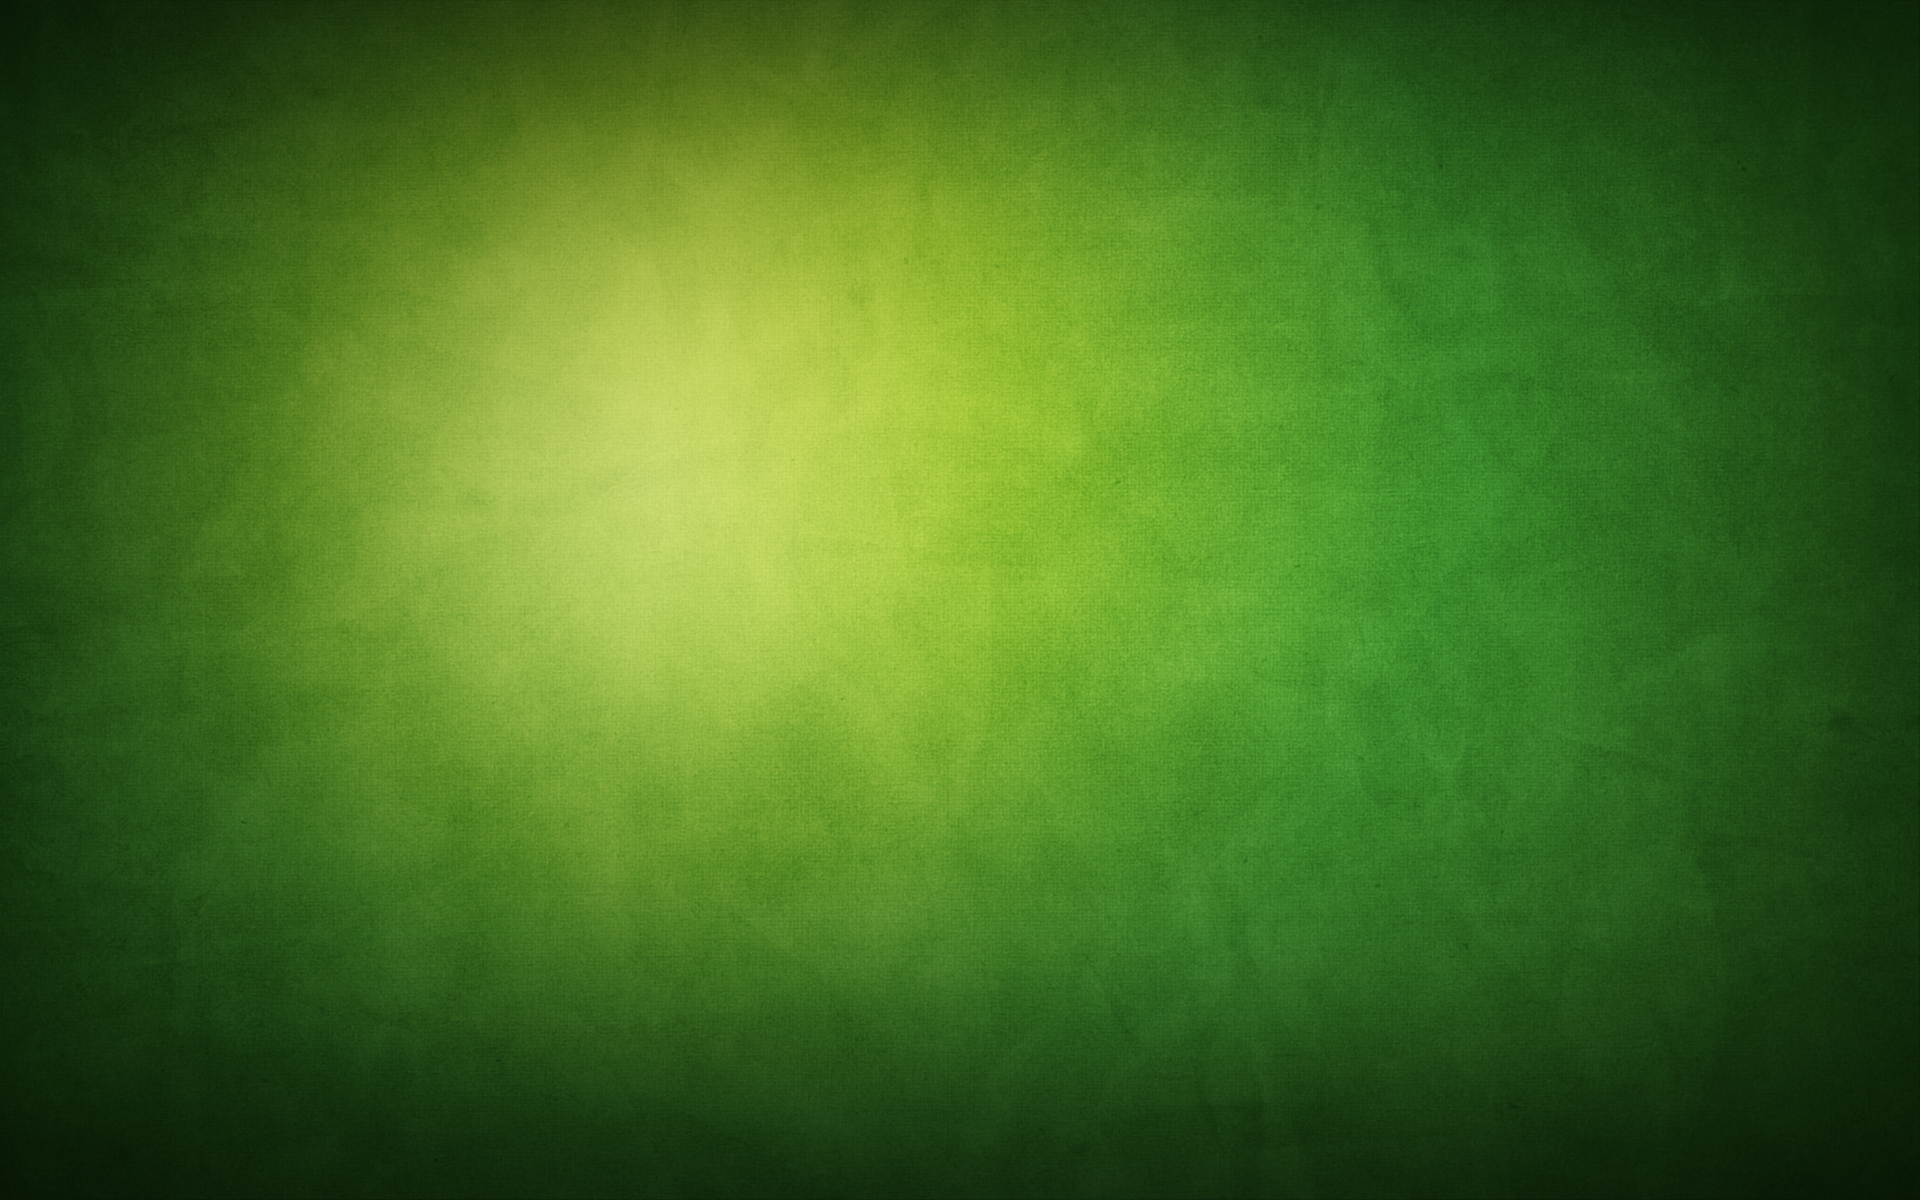 30 Hd Green Wallpapers